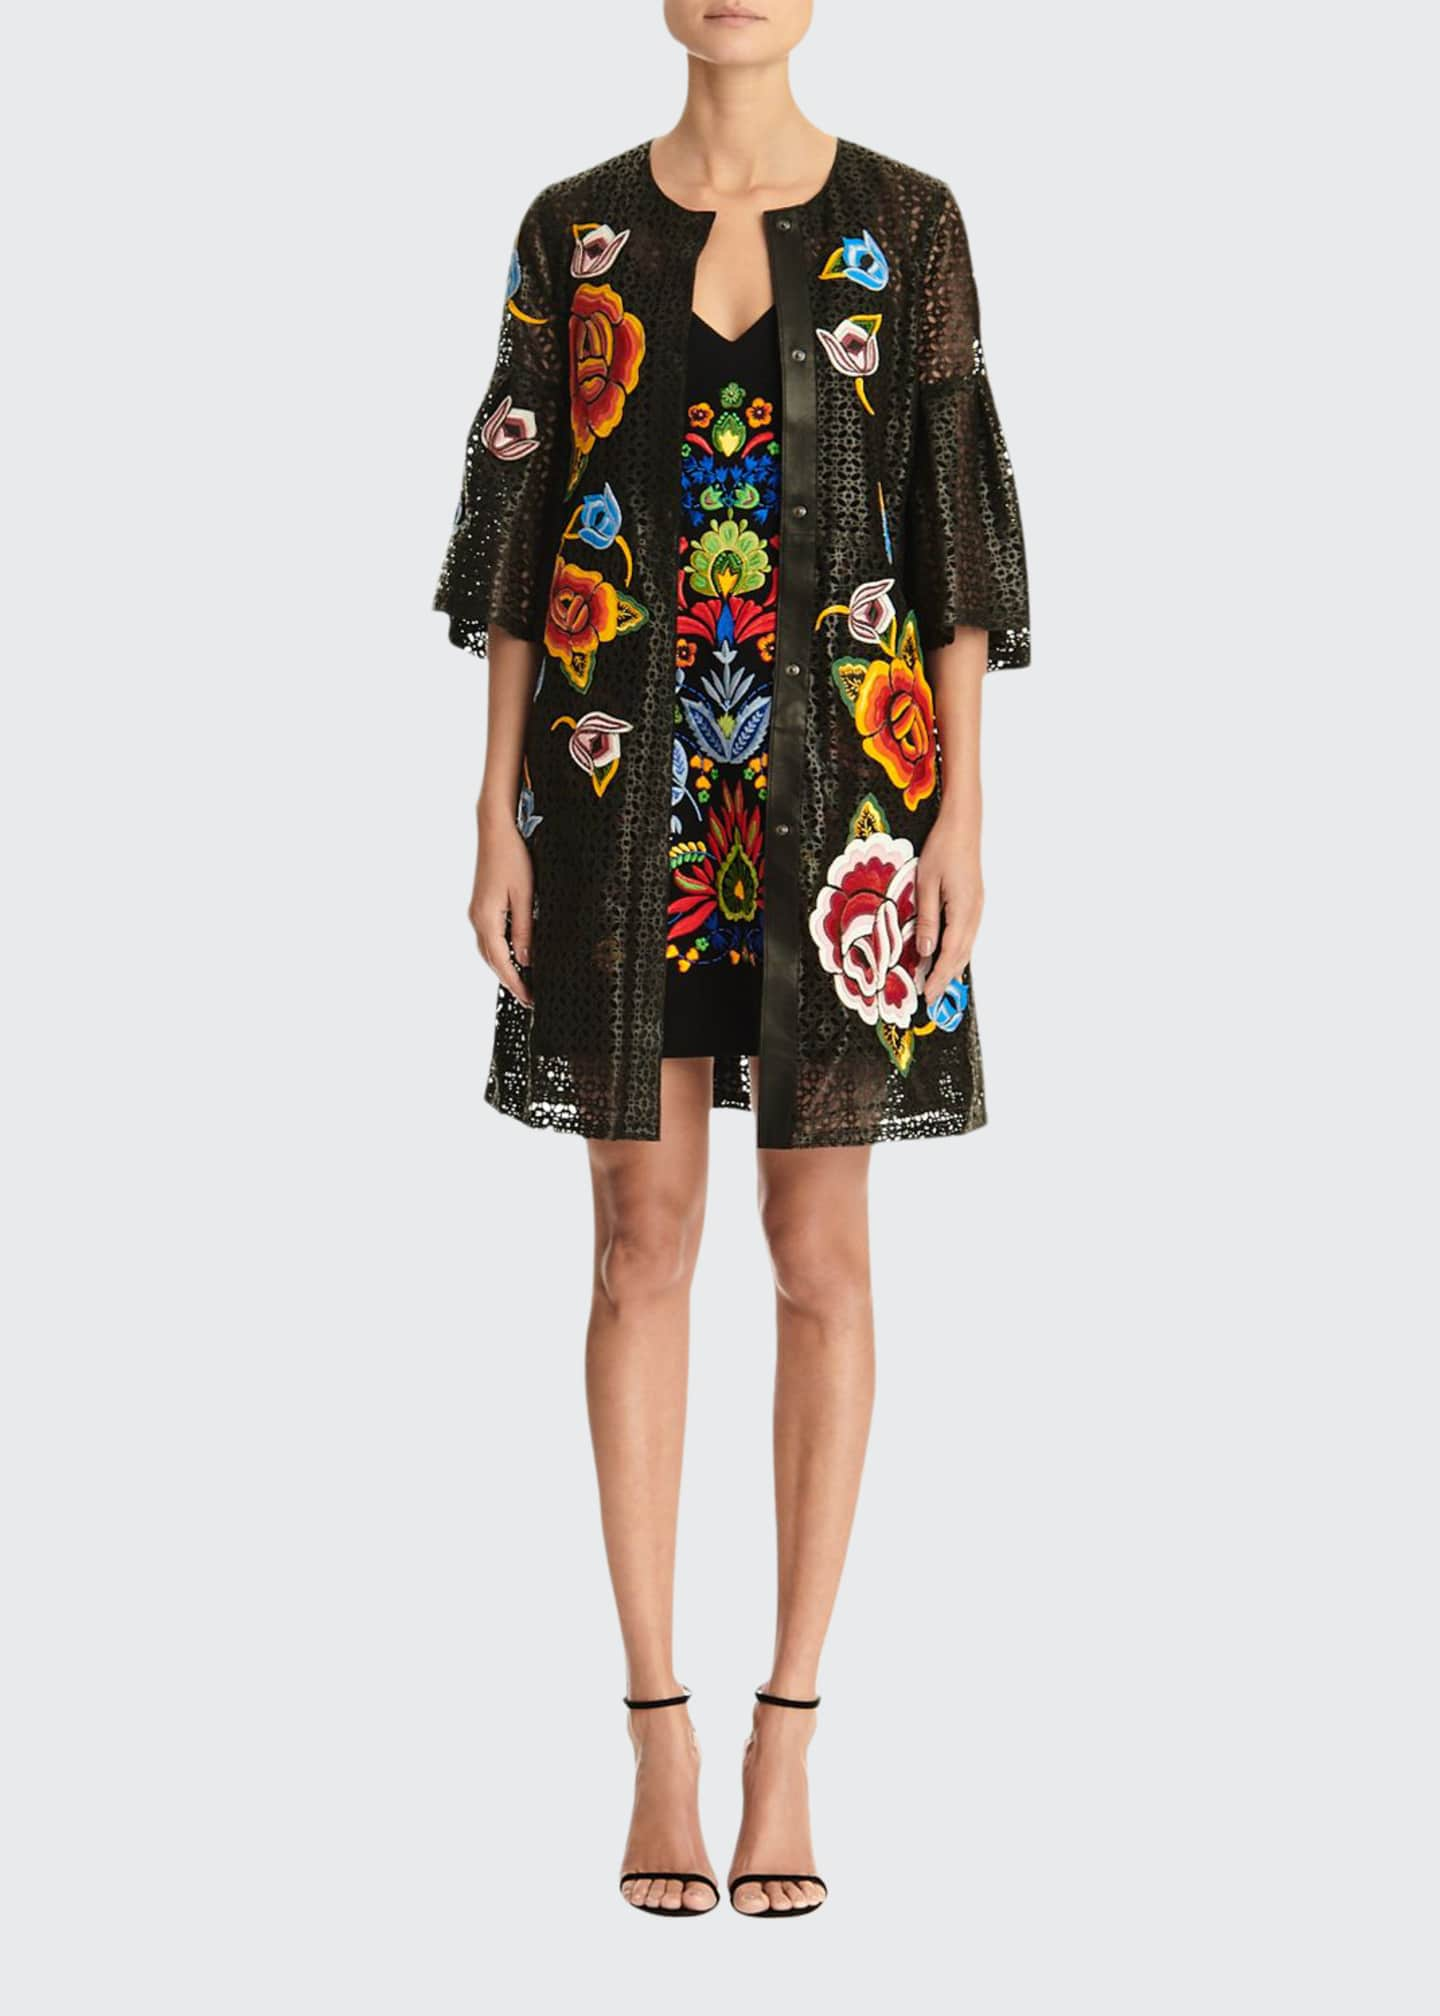 Carolina Herrera Floral Embroidered Bell-Sleeve Laser Cut Leather